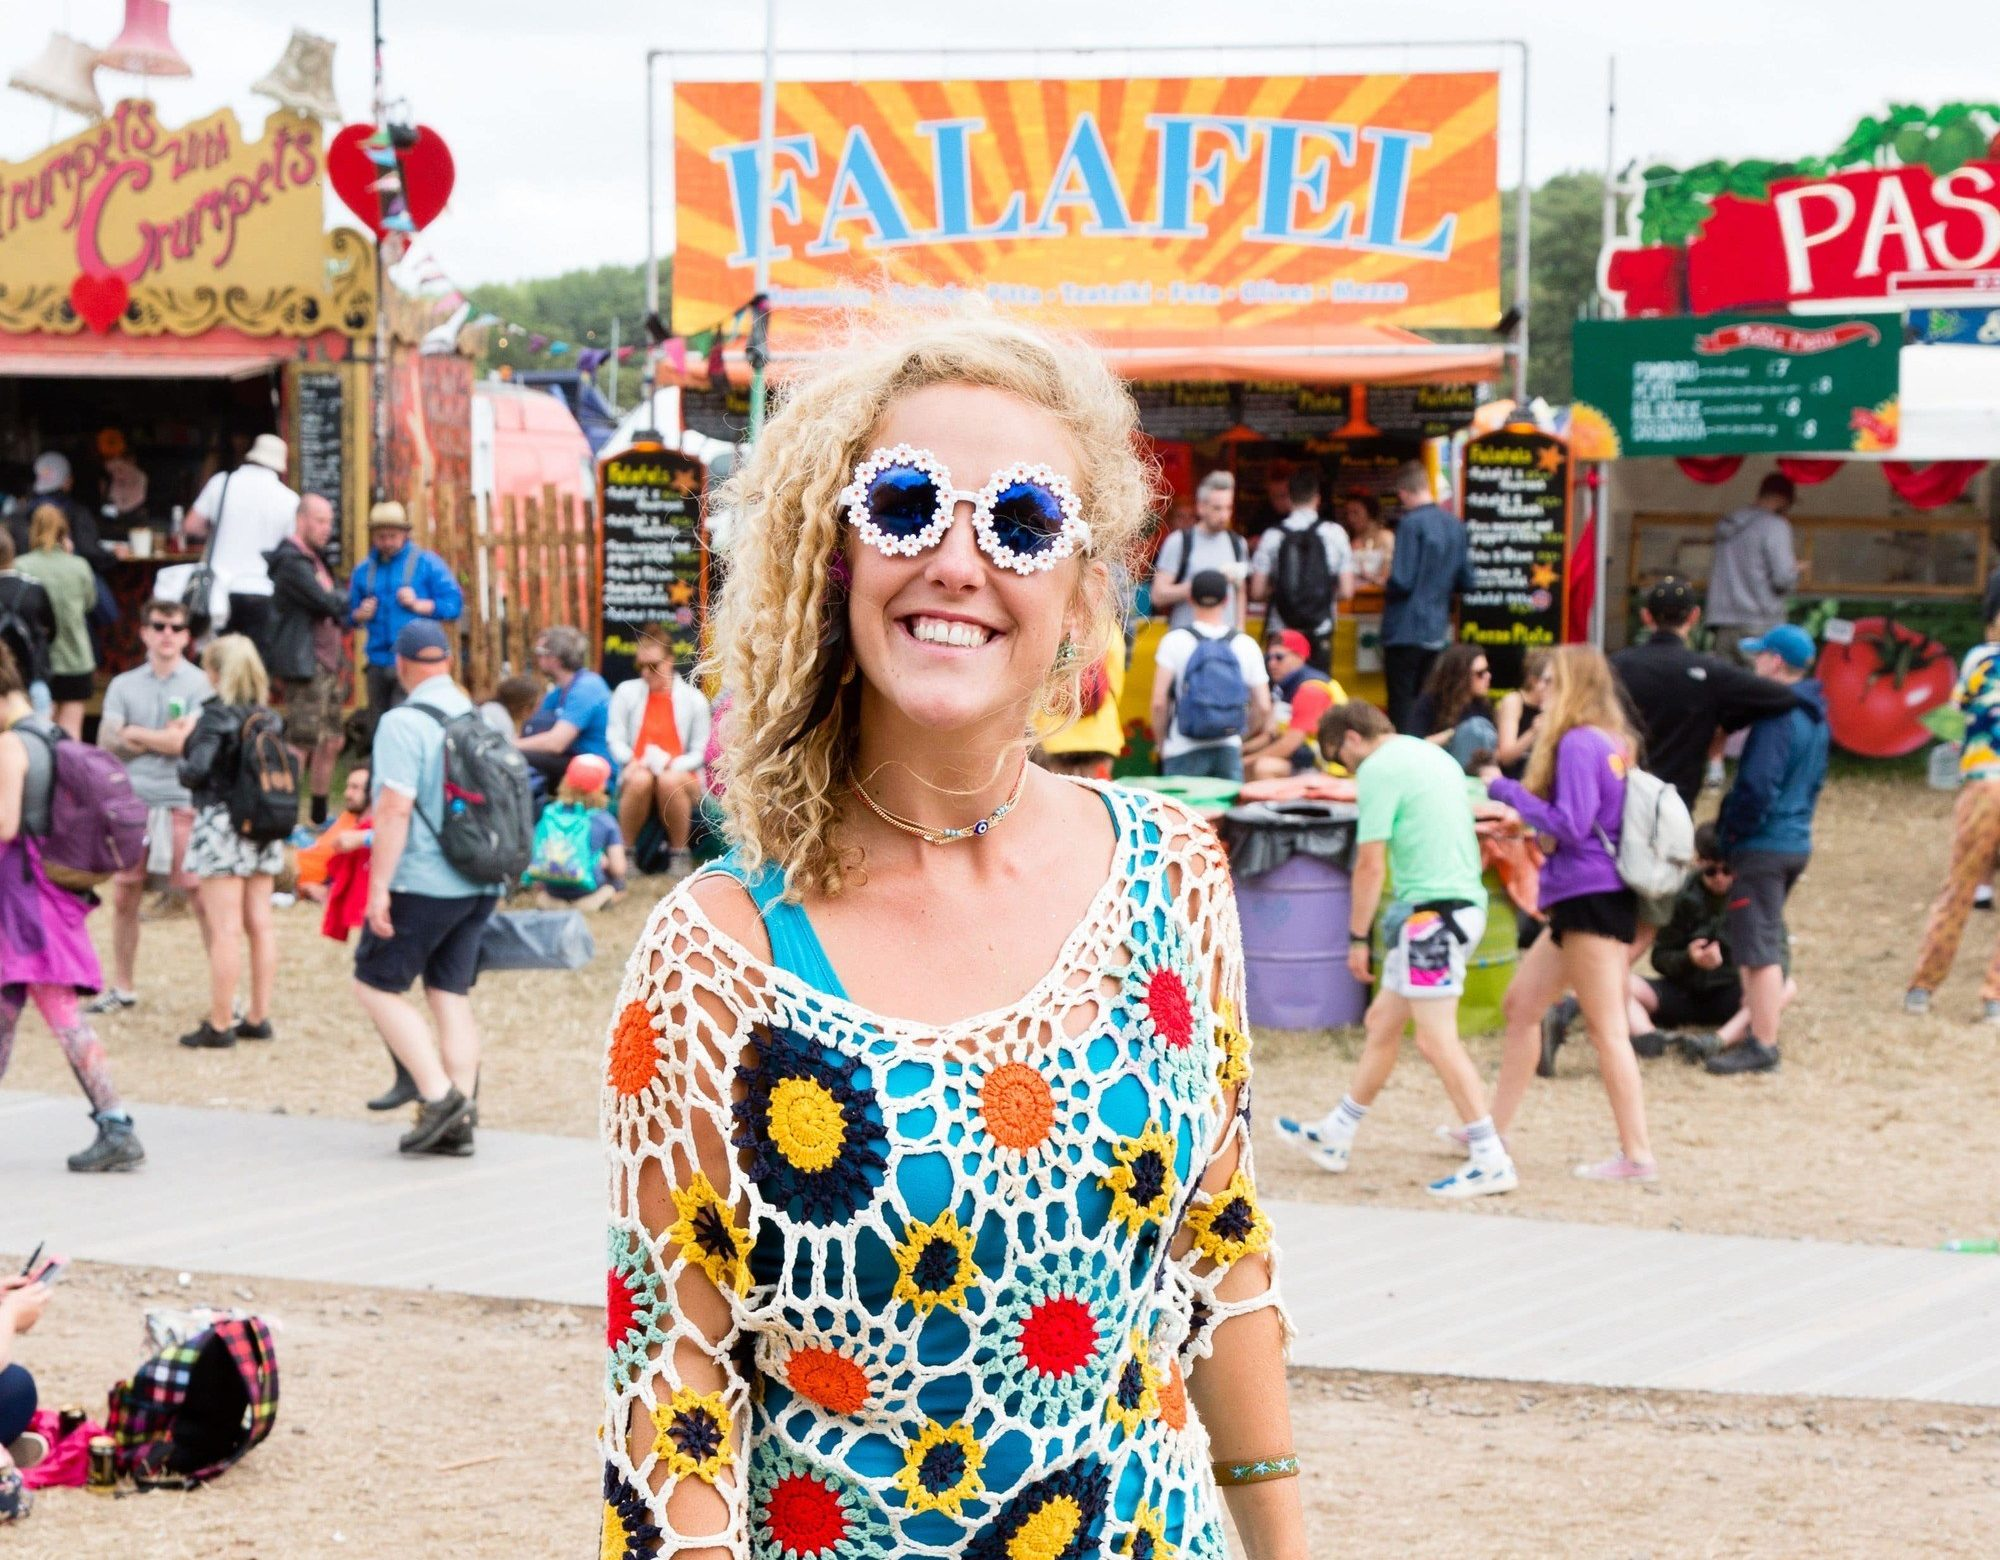 woman at glastonbury with spiral curls 80s hairstyle wearing blue outfit